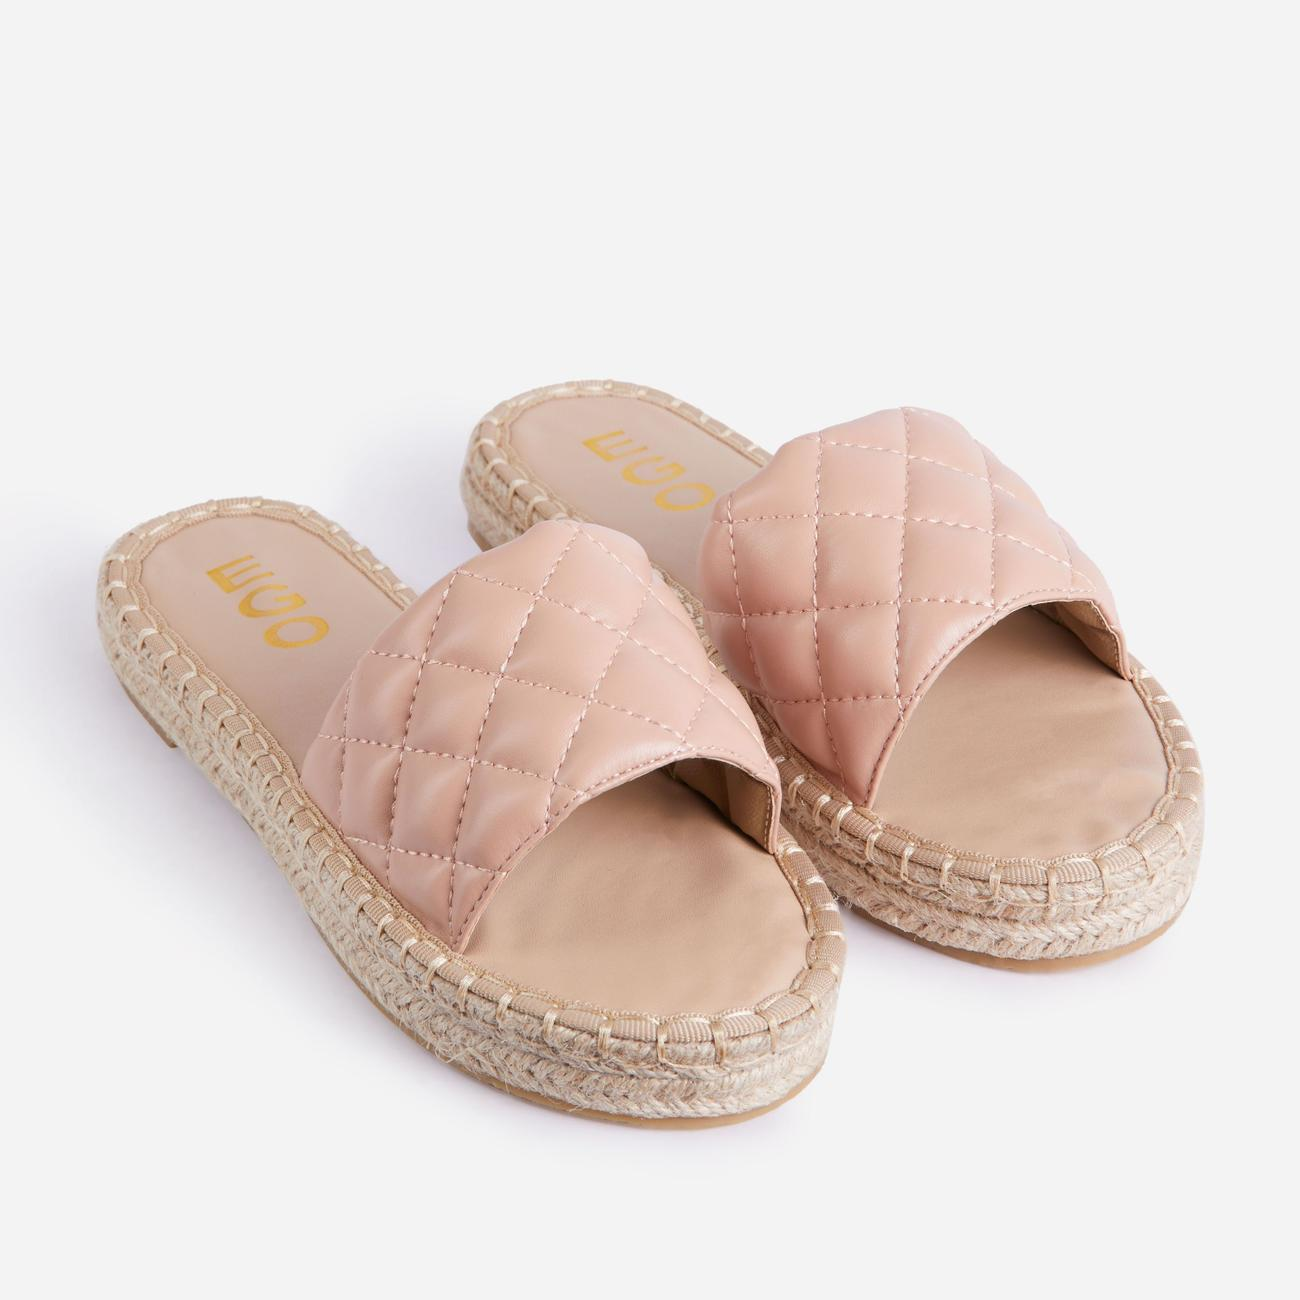 Aquarius Quilted Espadrille Flat Slider Sandal In Nude Faux Leather Image 2